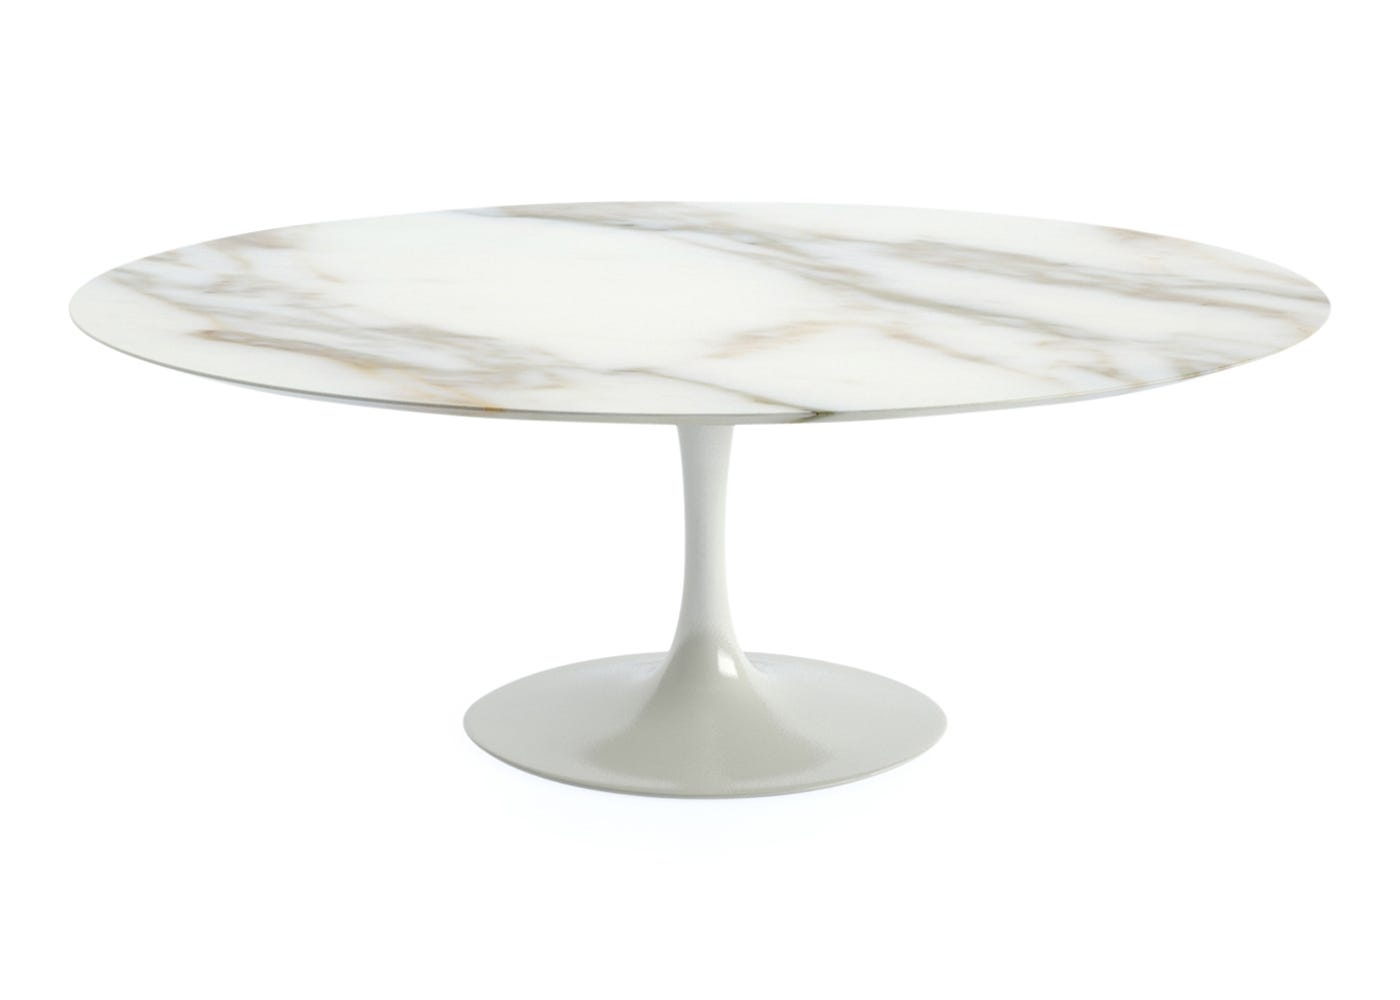 Saarinen Oval Dining Table Large With Calacatta Coated Marble Top